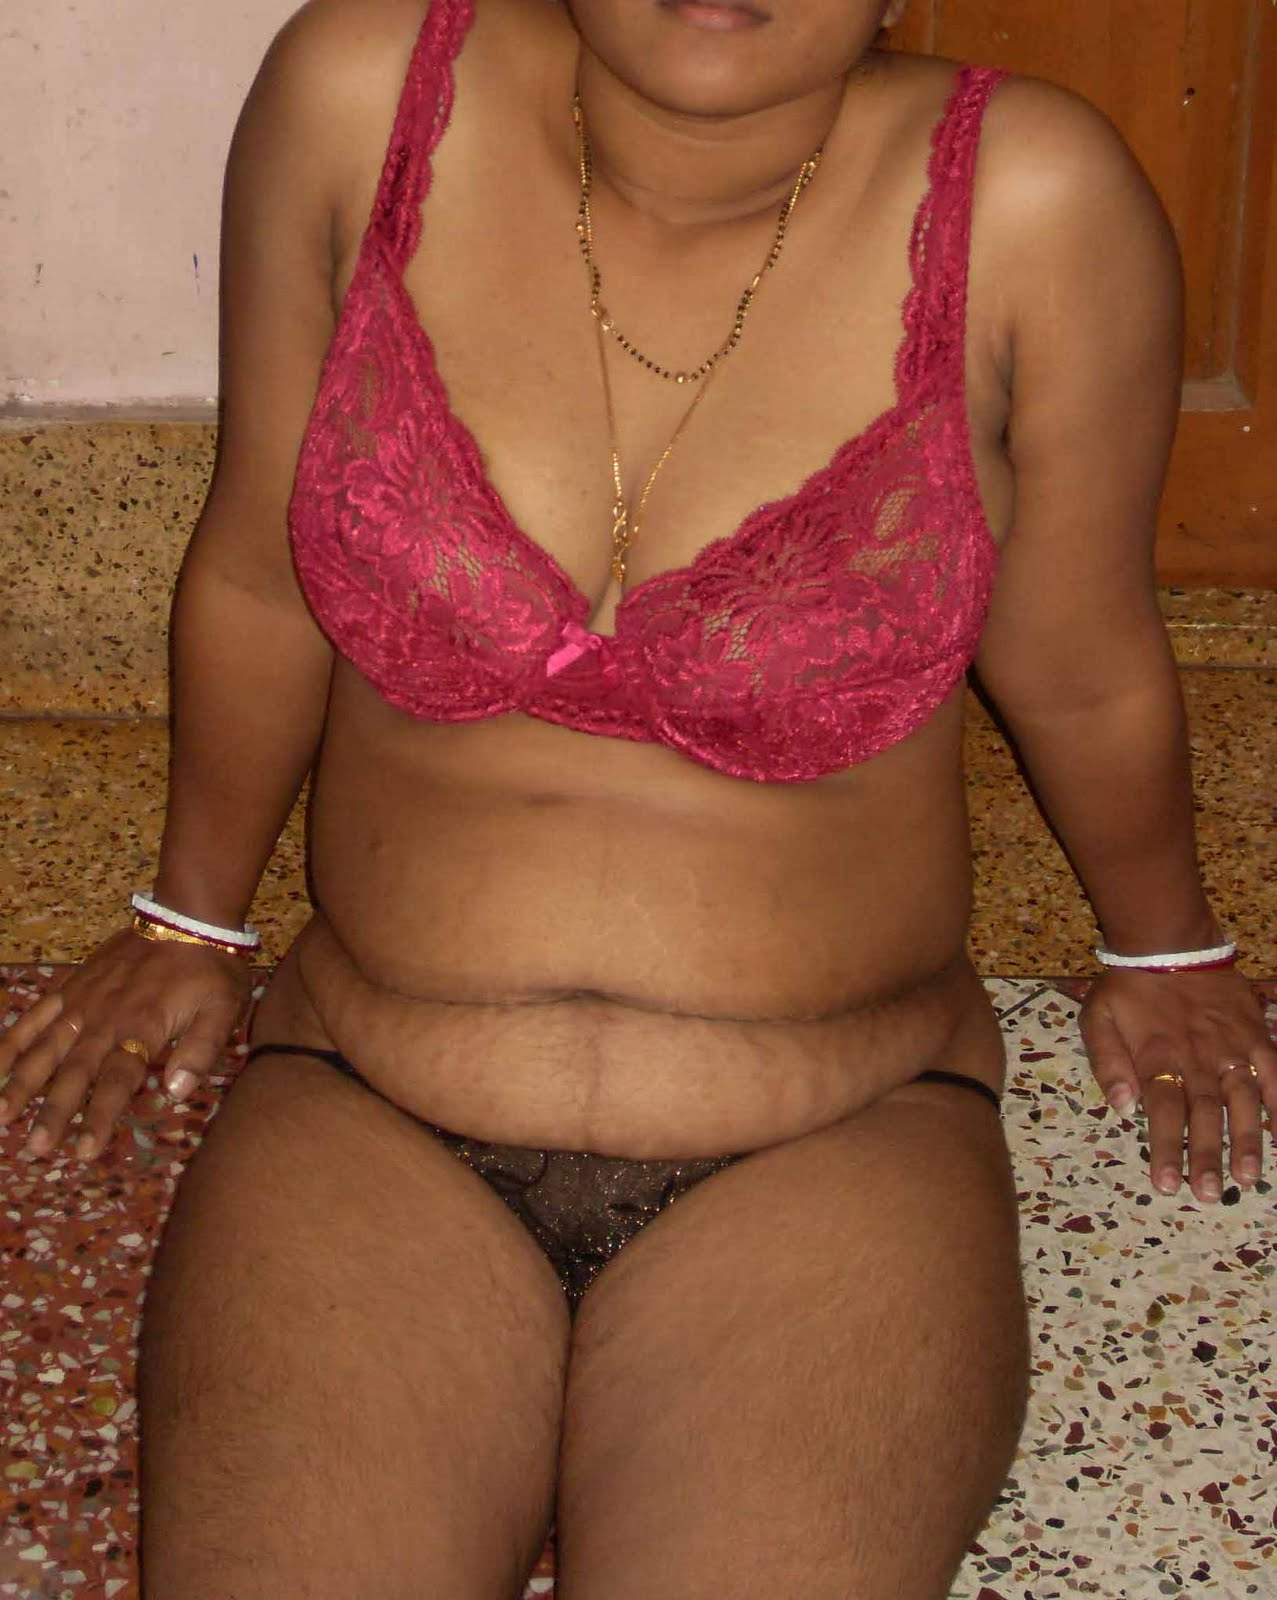 consider, big tits latina fucked hard and got a facial will refrain from